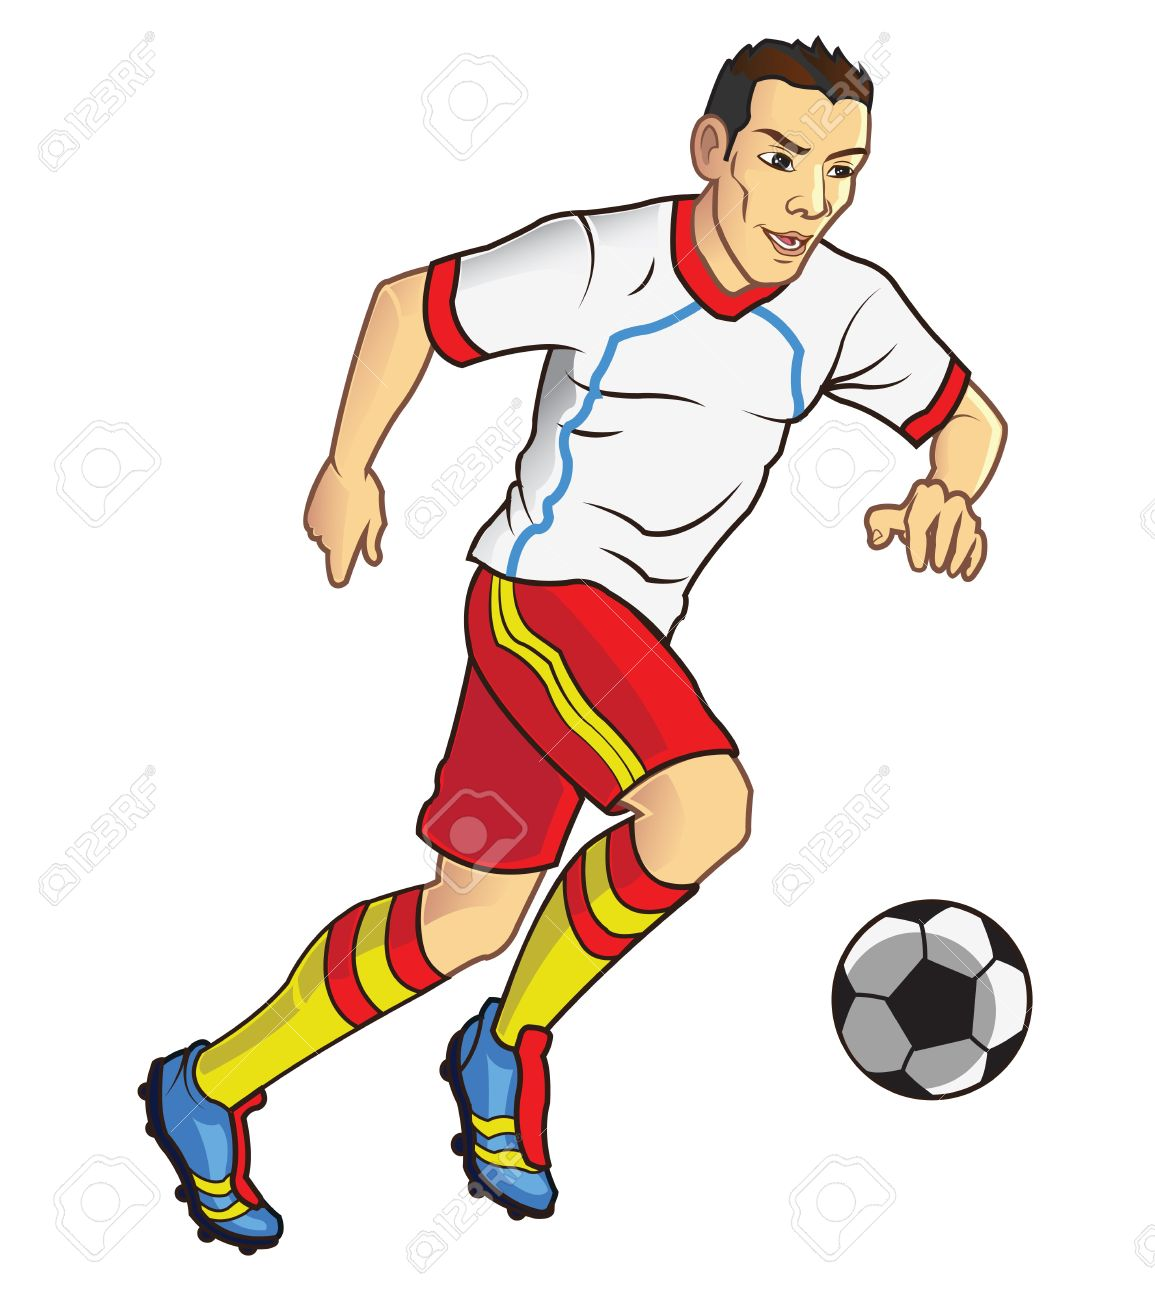 Soccer Player Dribbles The Balls Royalty Free Cliparts, Vectors.